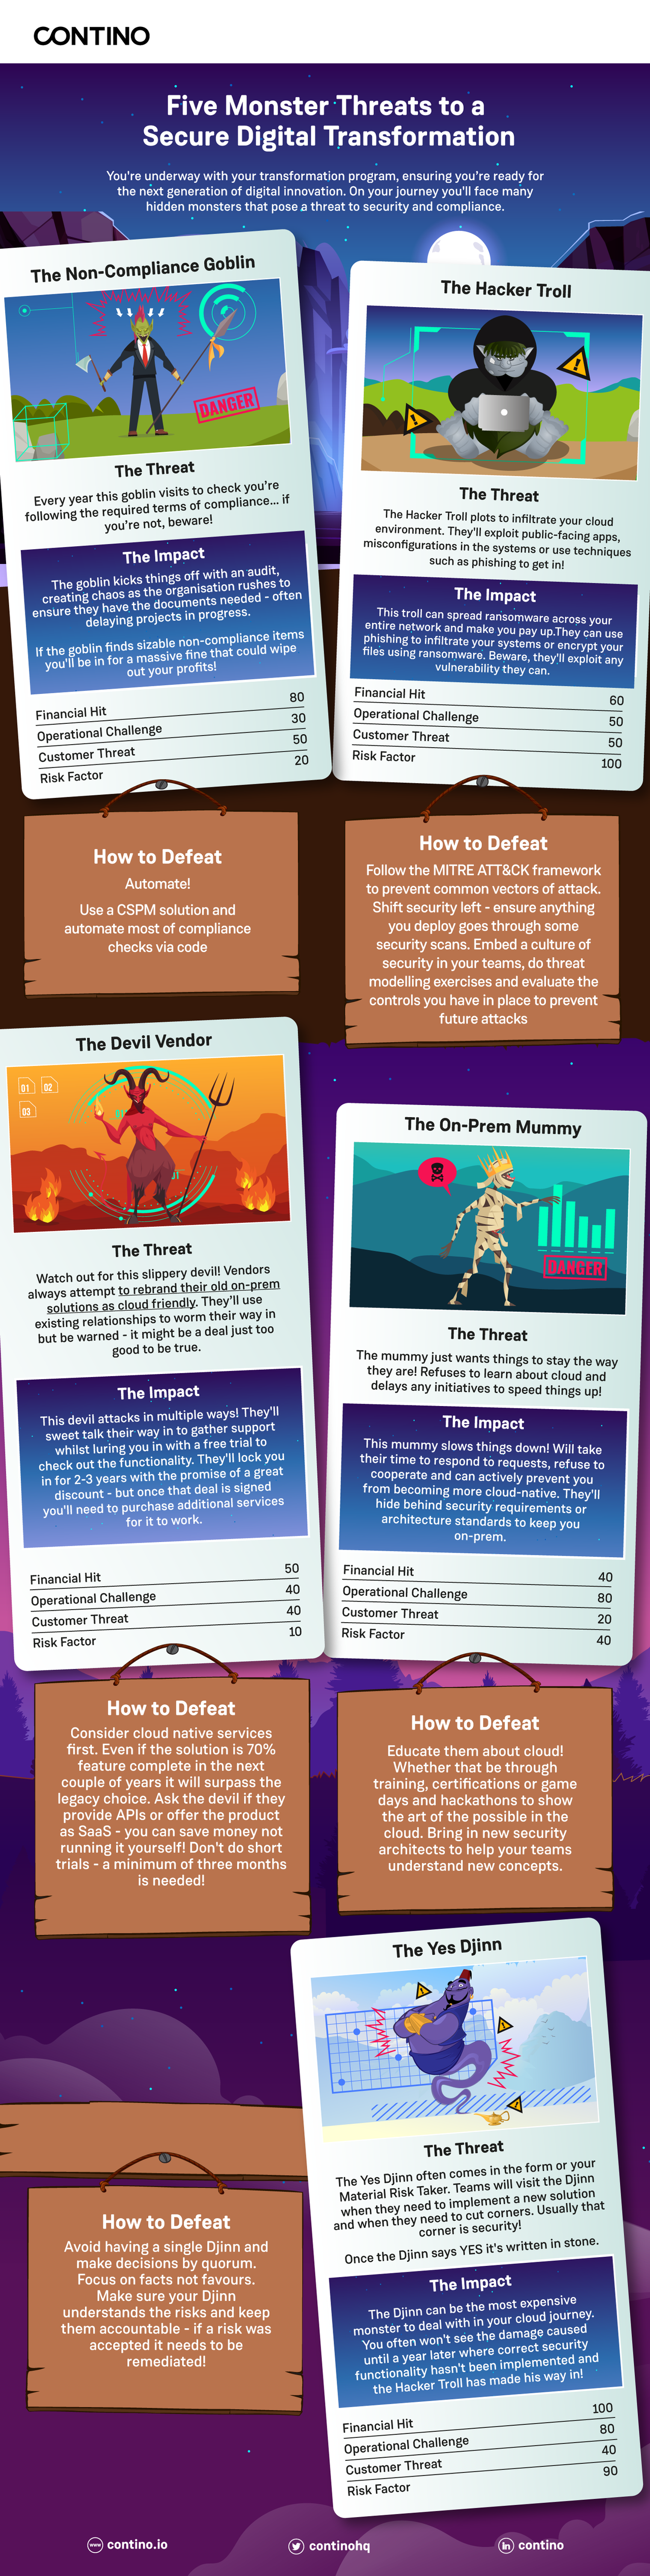 [Infographic] Five Monster Threats to a Secure Digital Transformation